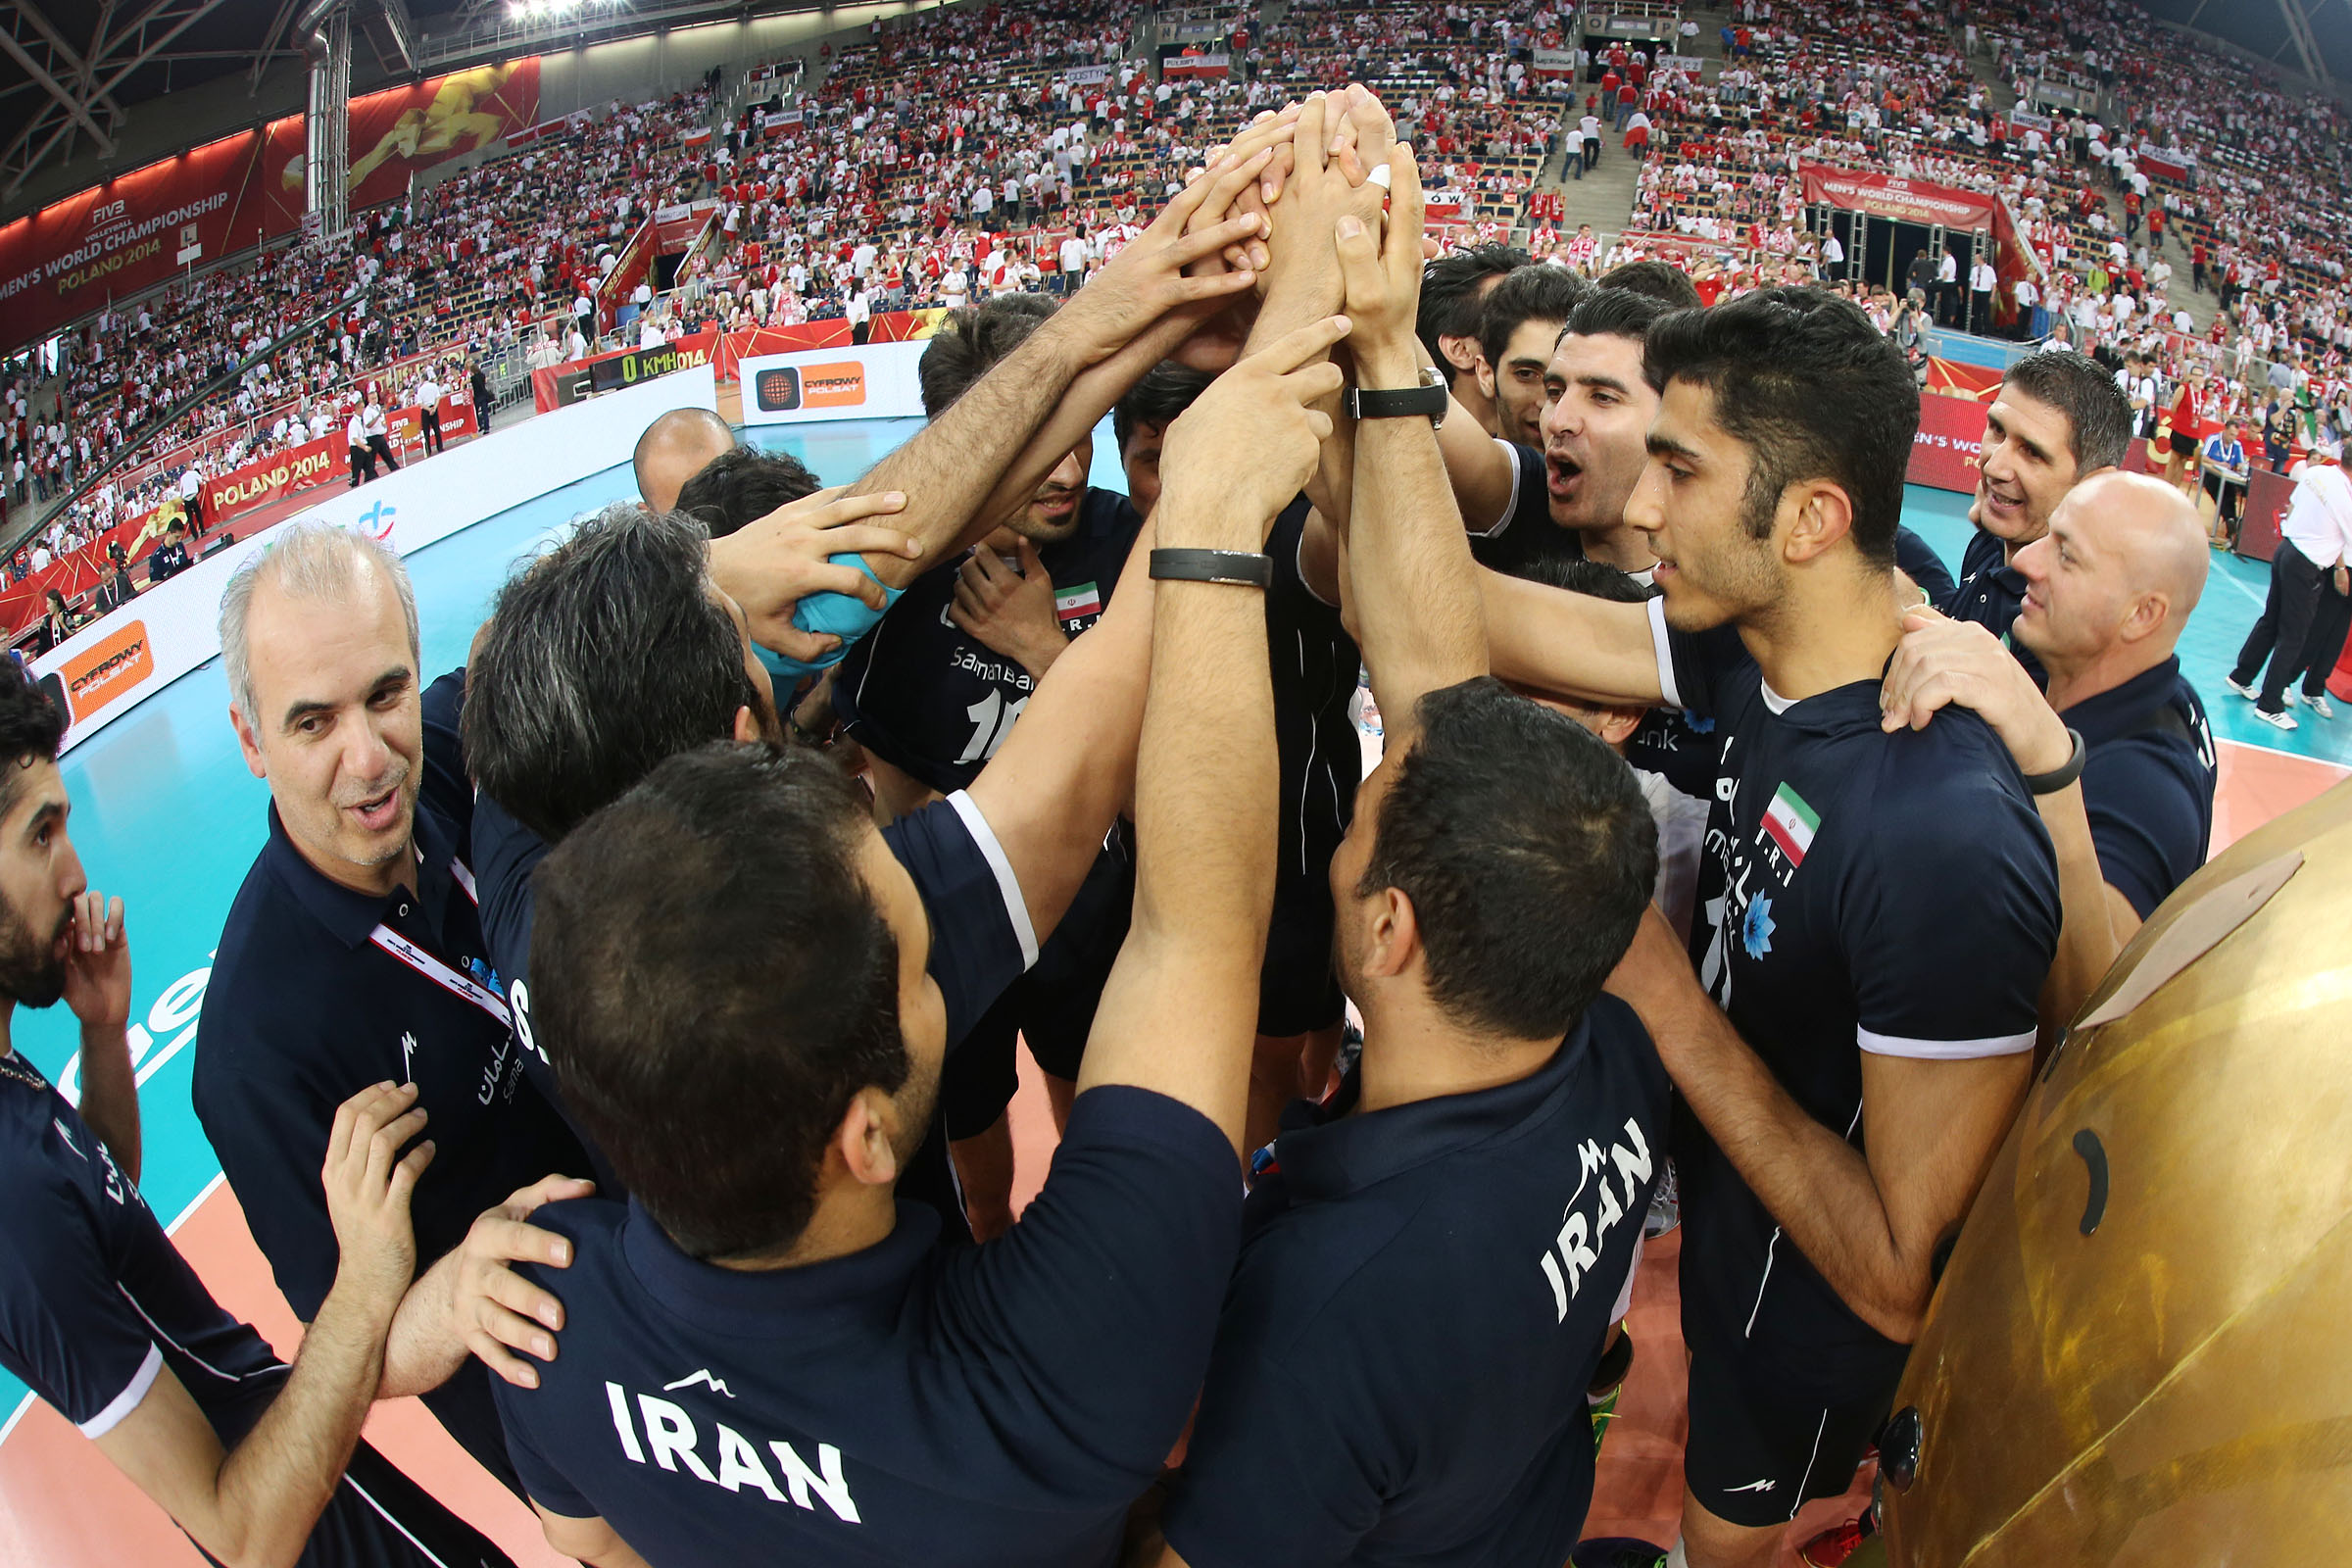 http://www.fivb.org/Vis2009/Images/GetImage.asmx?No=49365&type=Press&maxSize=0